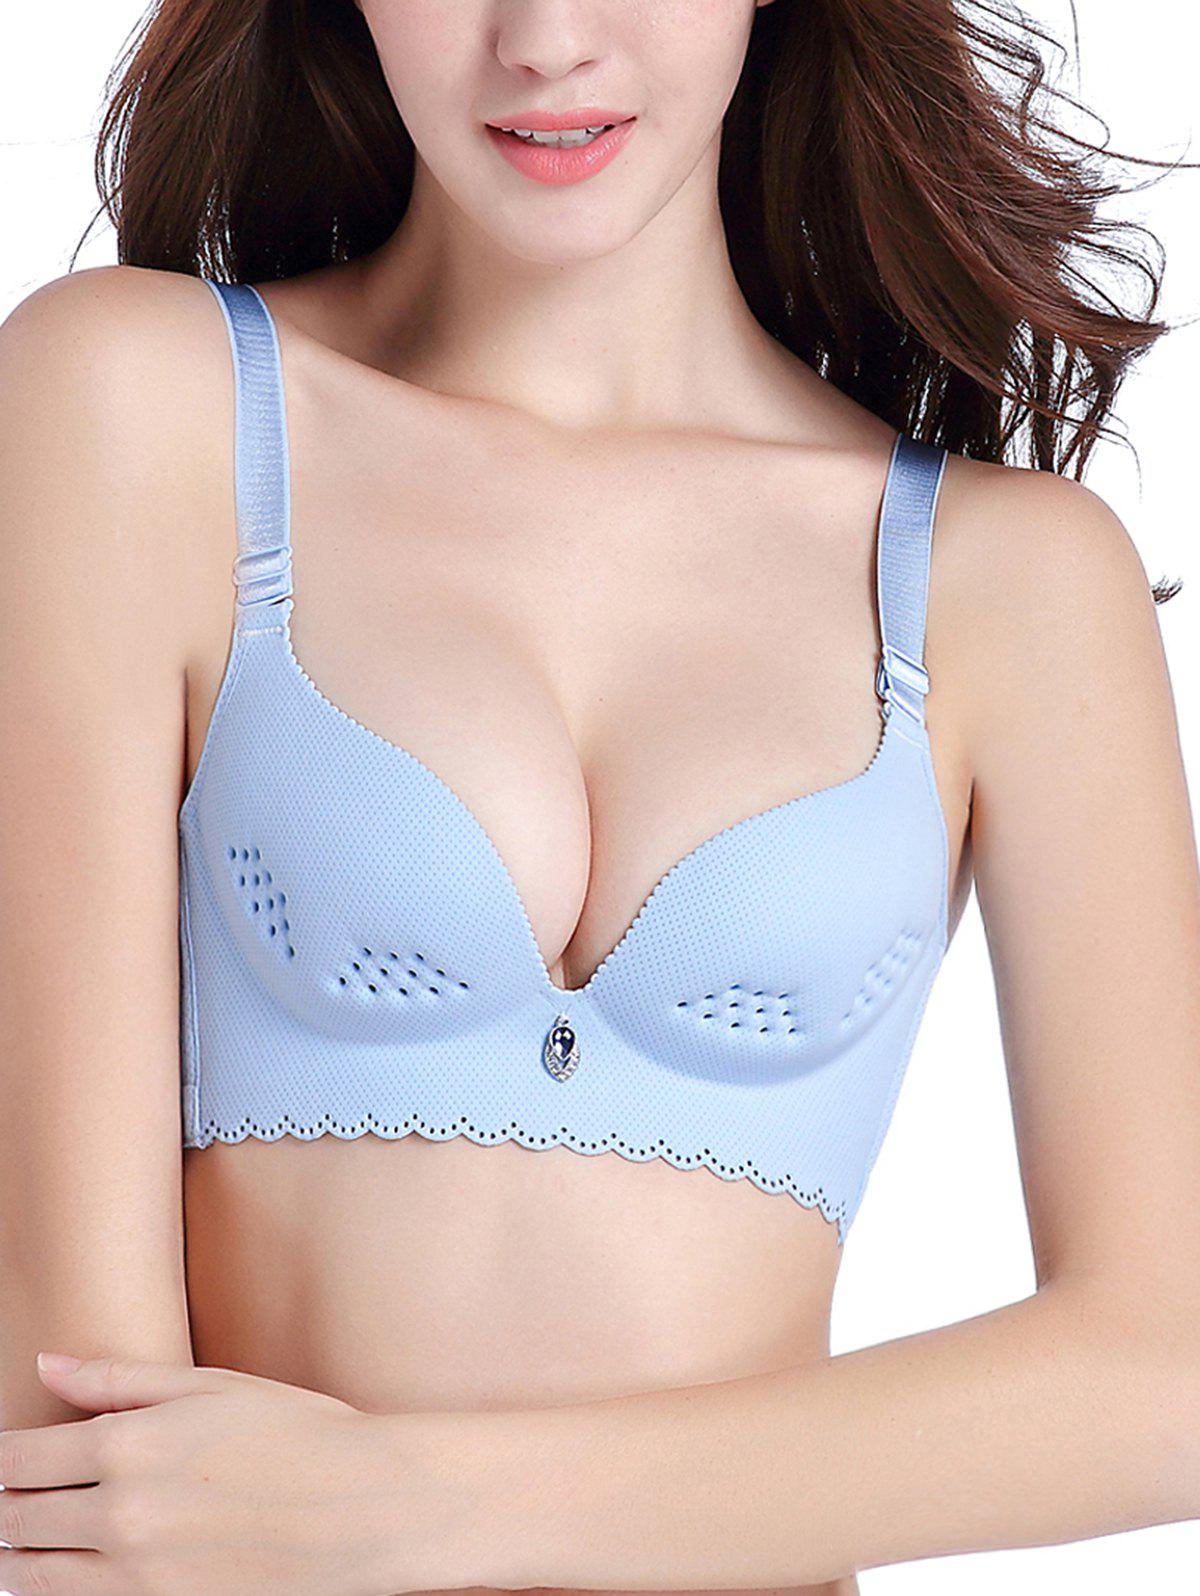 Openwork Scallop Trim Seamless Bra - CLOUDY 70B